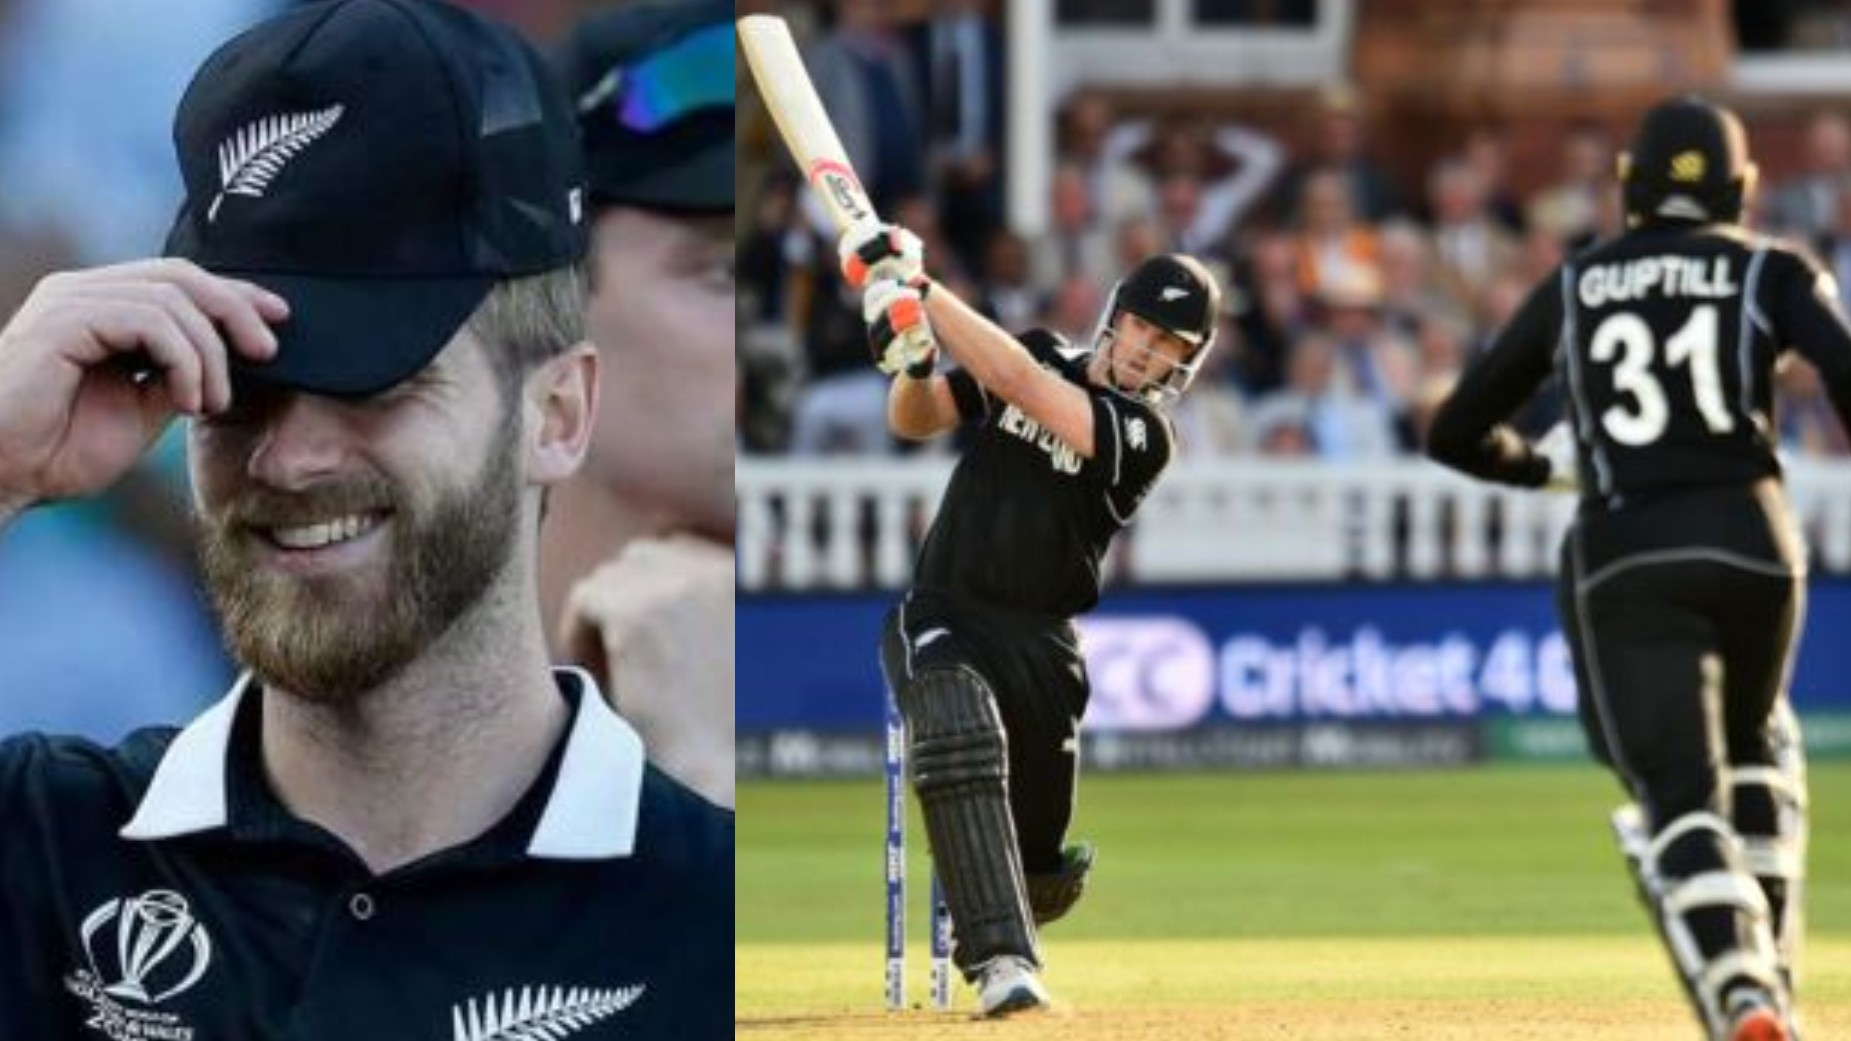 Kane Williamson reveals why Guptill and Neesham were sent to bat in World cup final super over